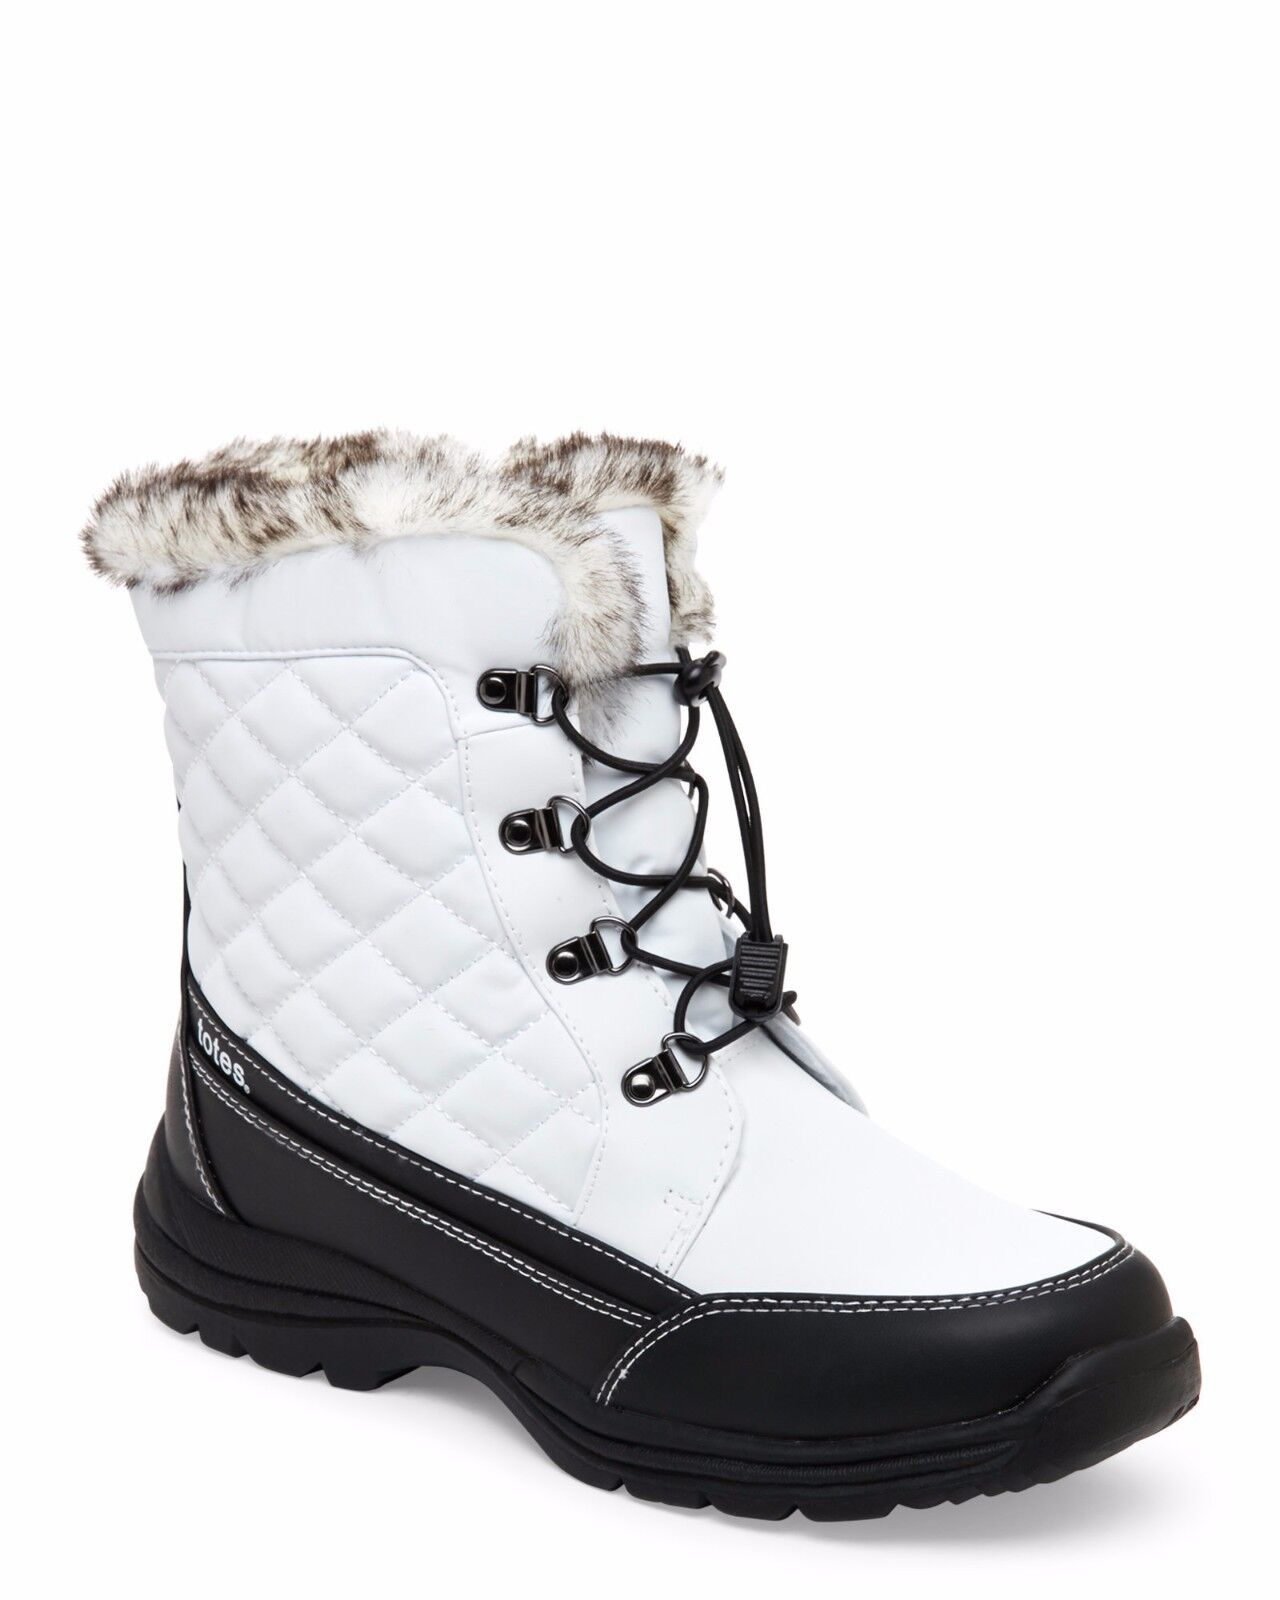 NEW WOMEN'S WHITE WATERPROOF FAUX FUR TOBY TOTES BOOTS  LACES AND SIDE ZIPPER